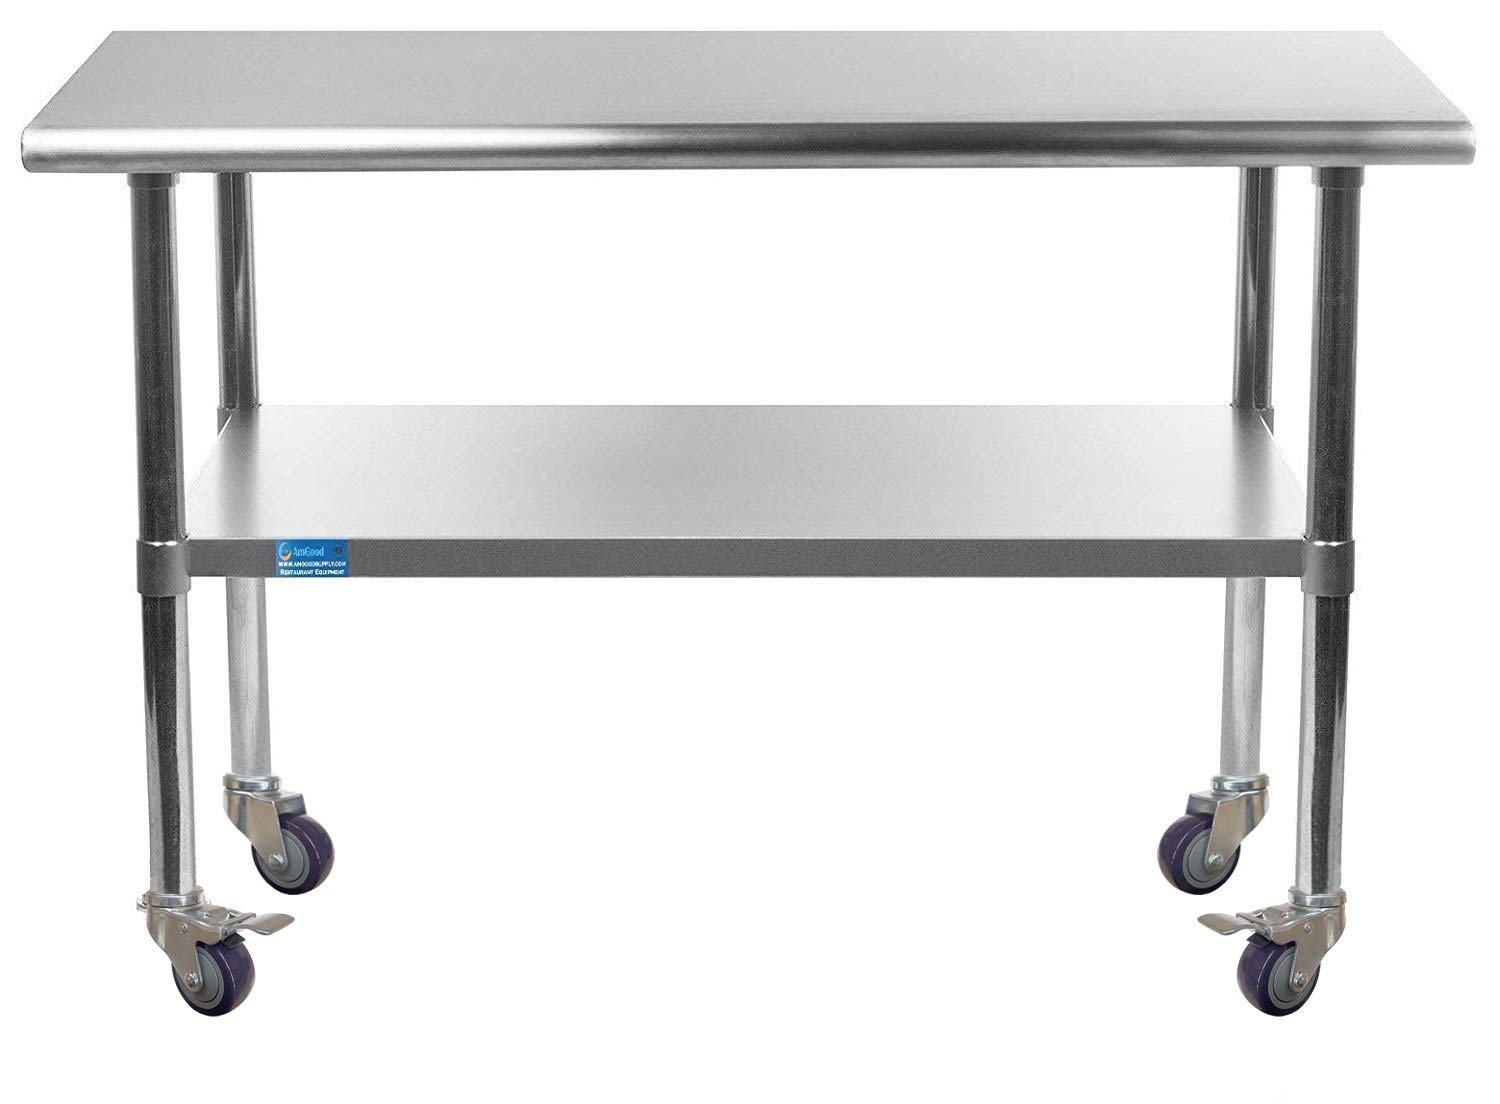 AmGood Stainless Steel Work Station Table Limited time sale Casters with Popular